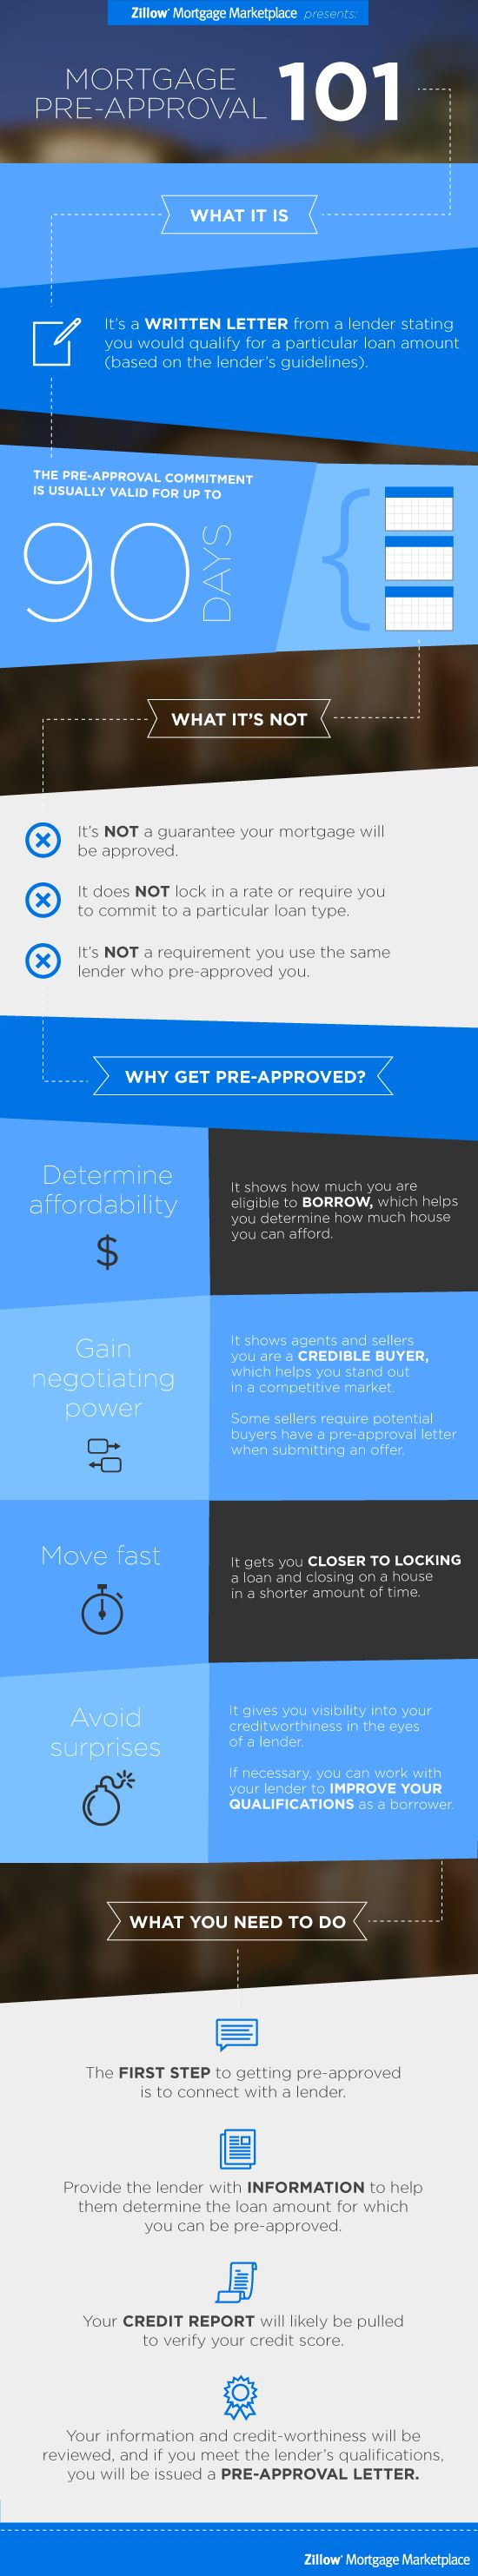 Why you should get preapproved for a #mortgage before shopping for houses - Infographic